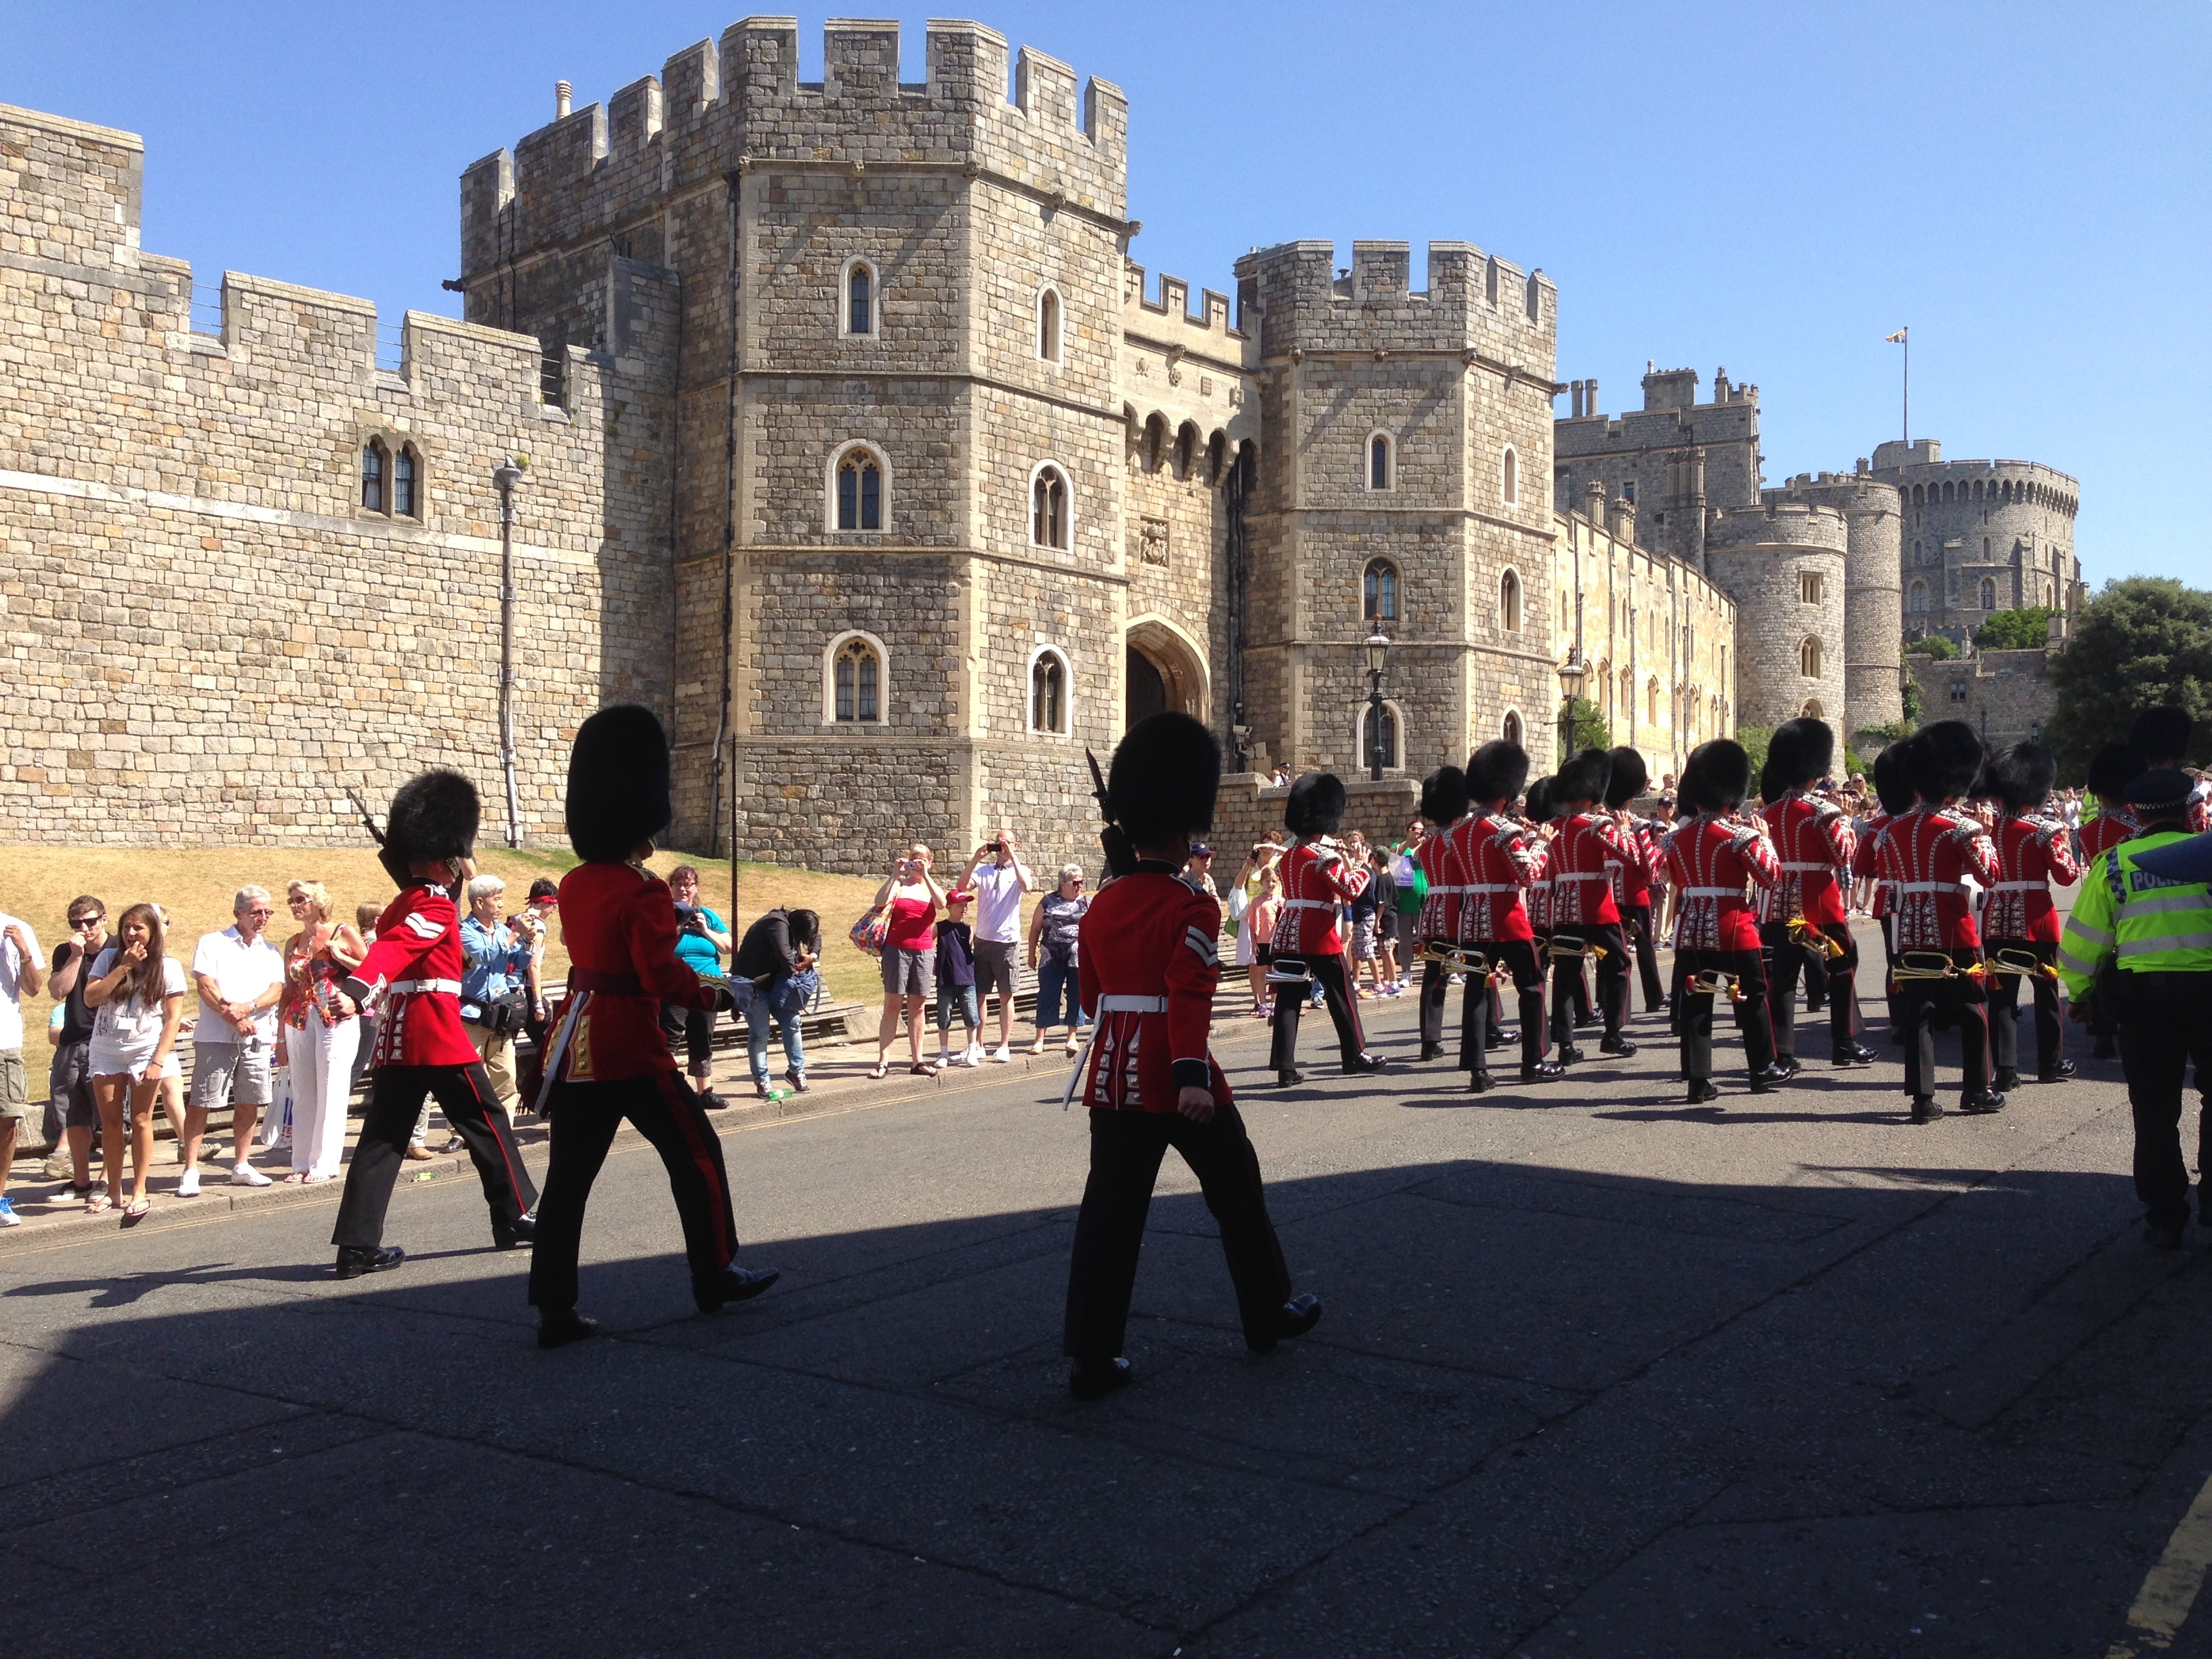 Changing of the Guard at Windsor